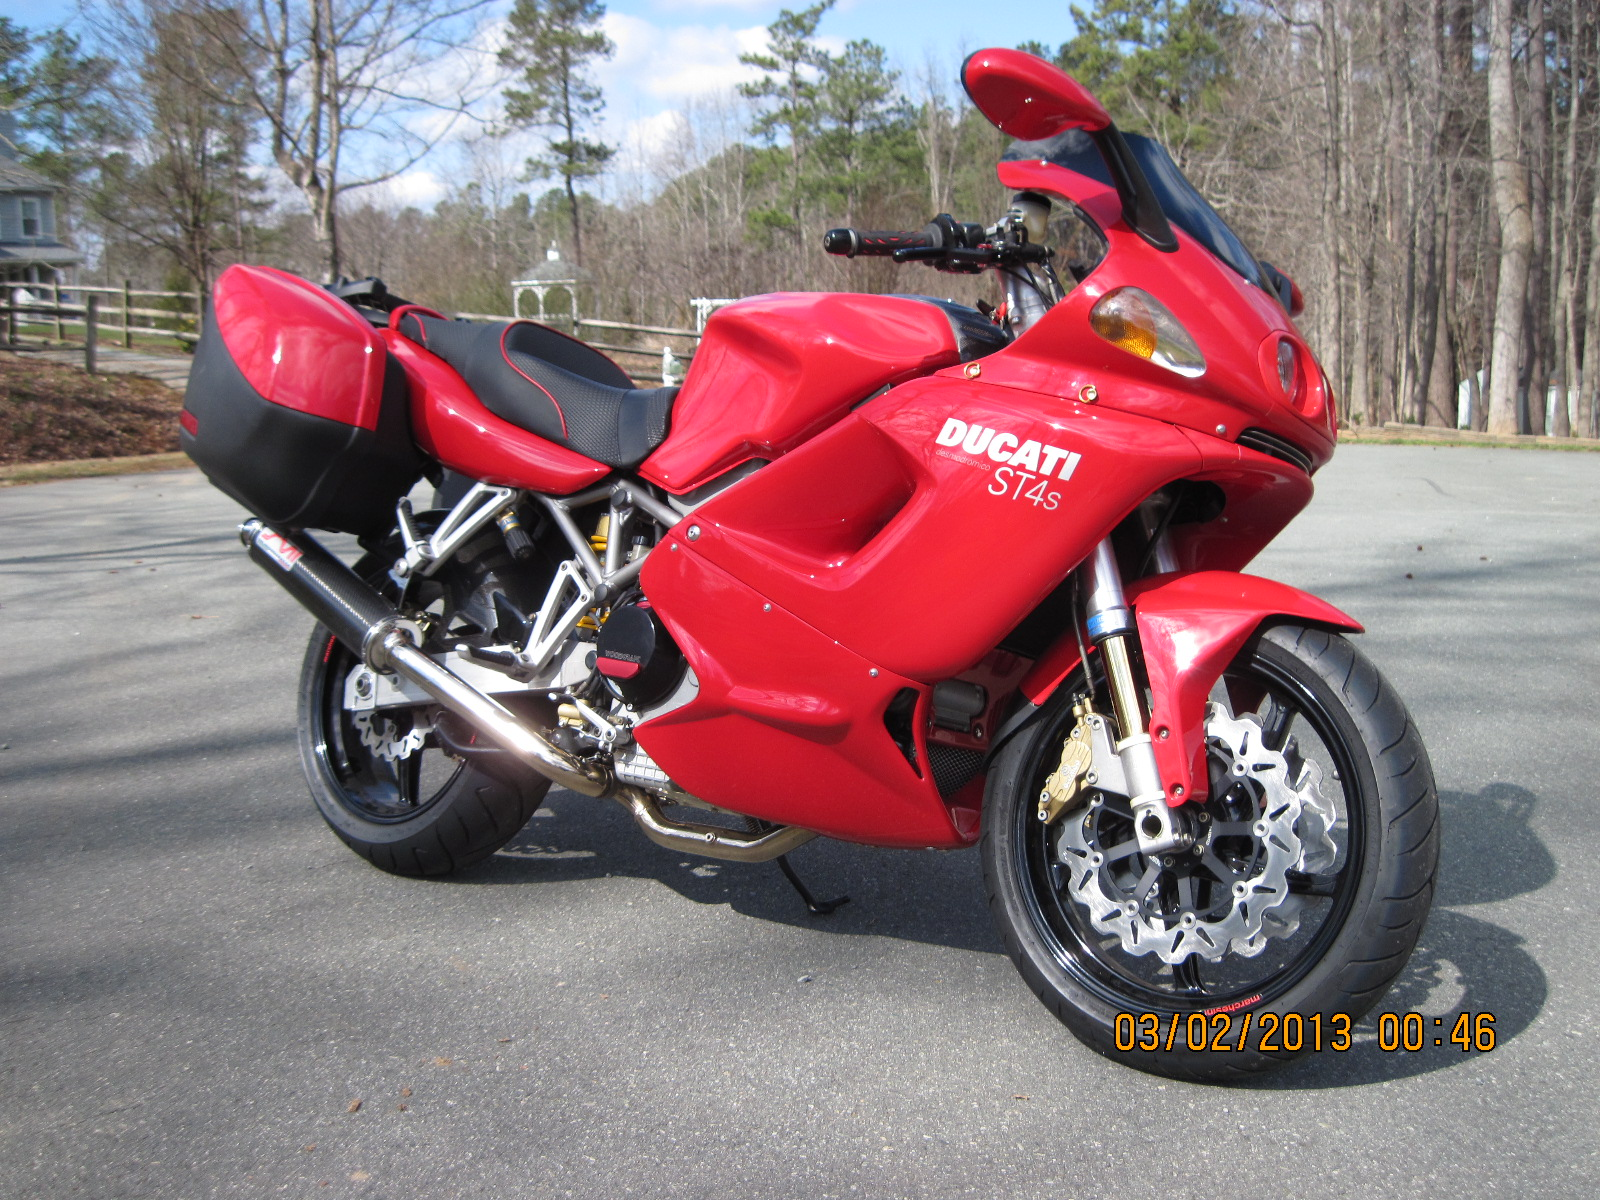 upgraded to st4s - ducati.ms - the ultimate ducati forum